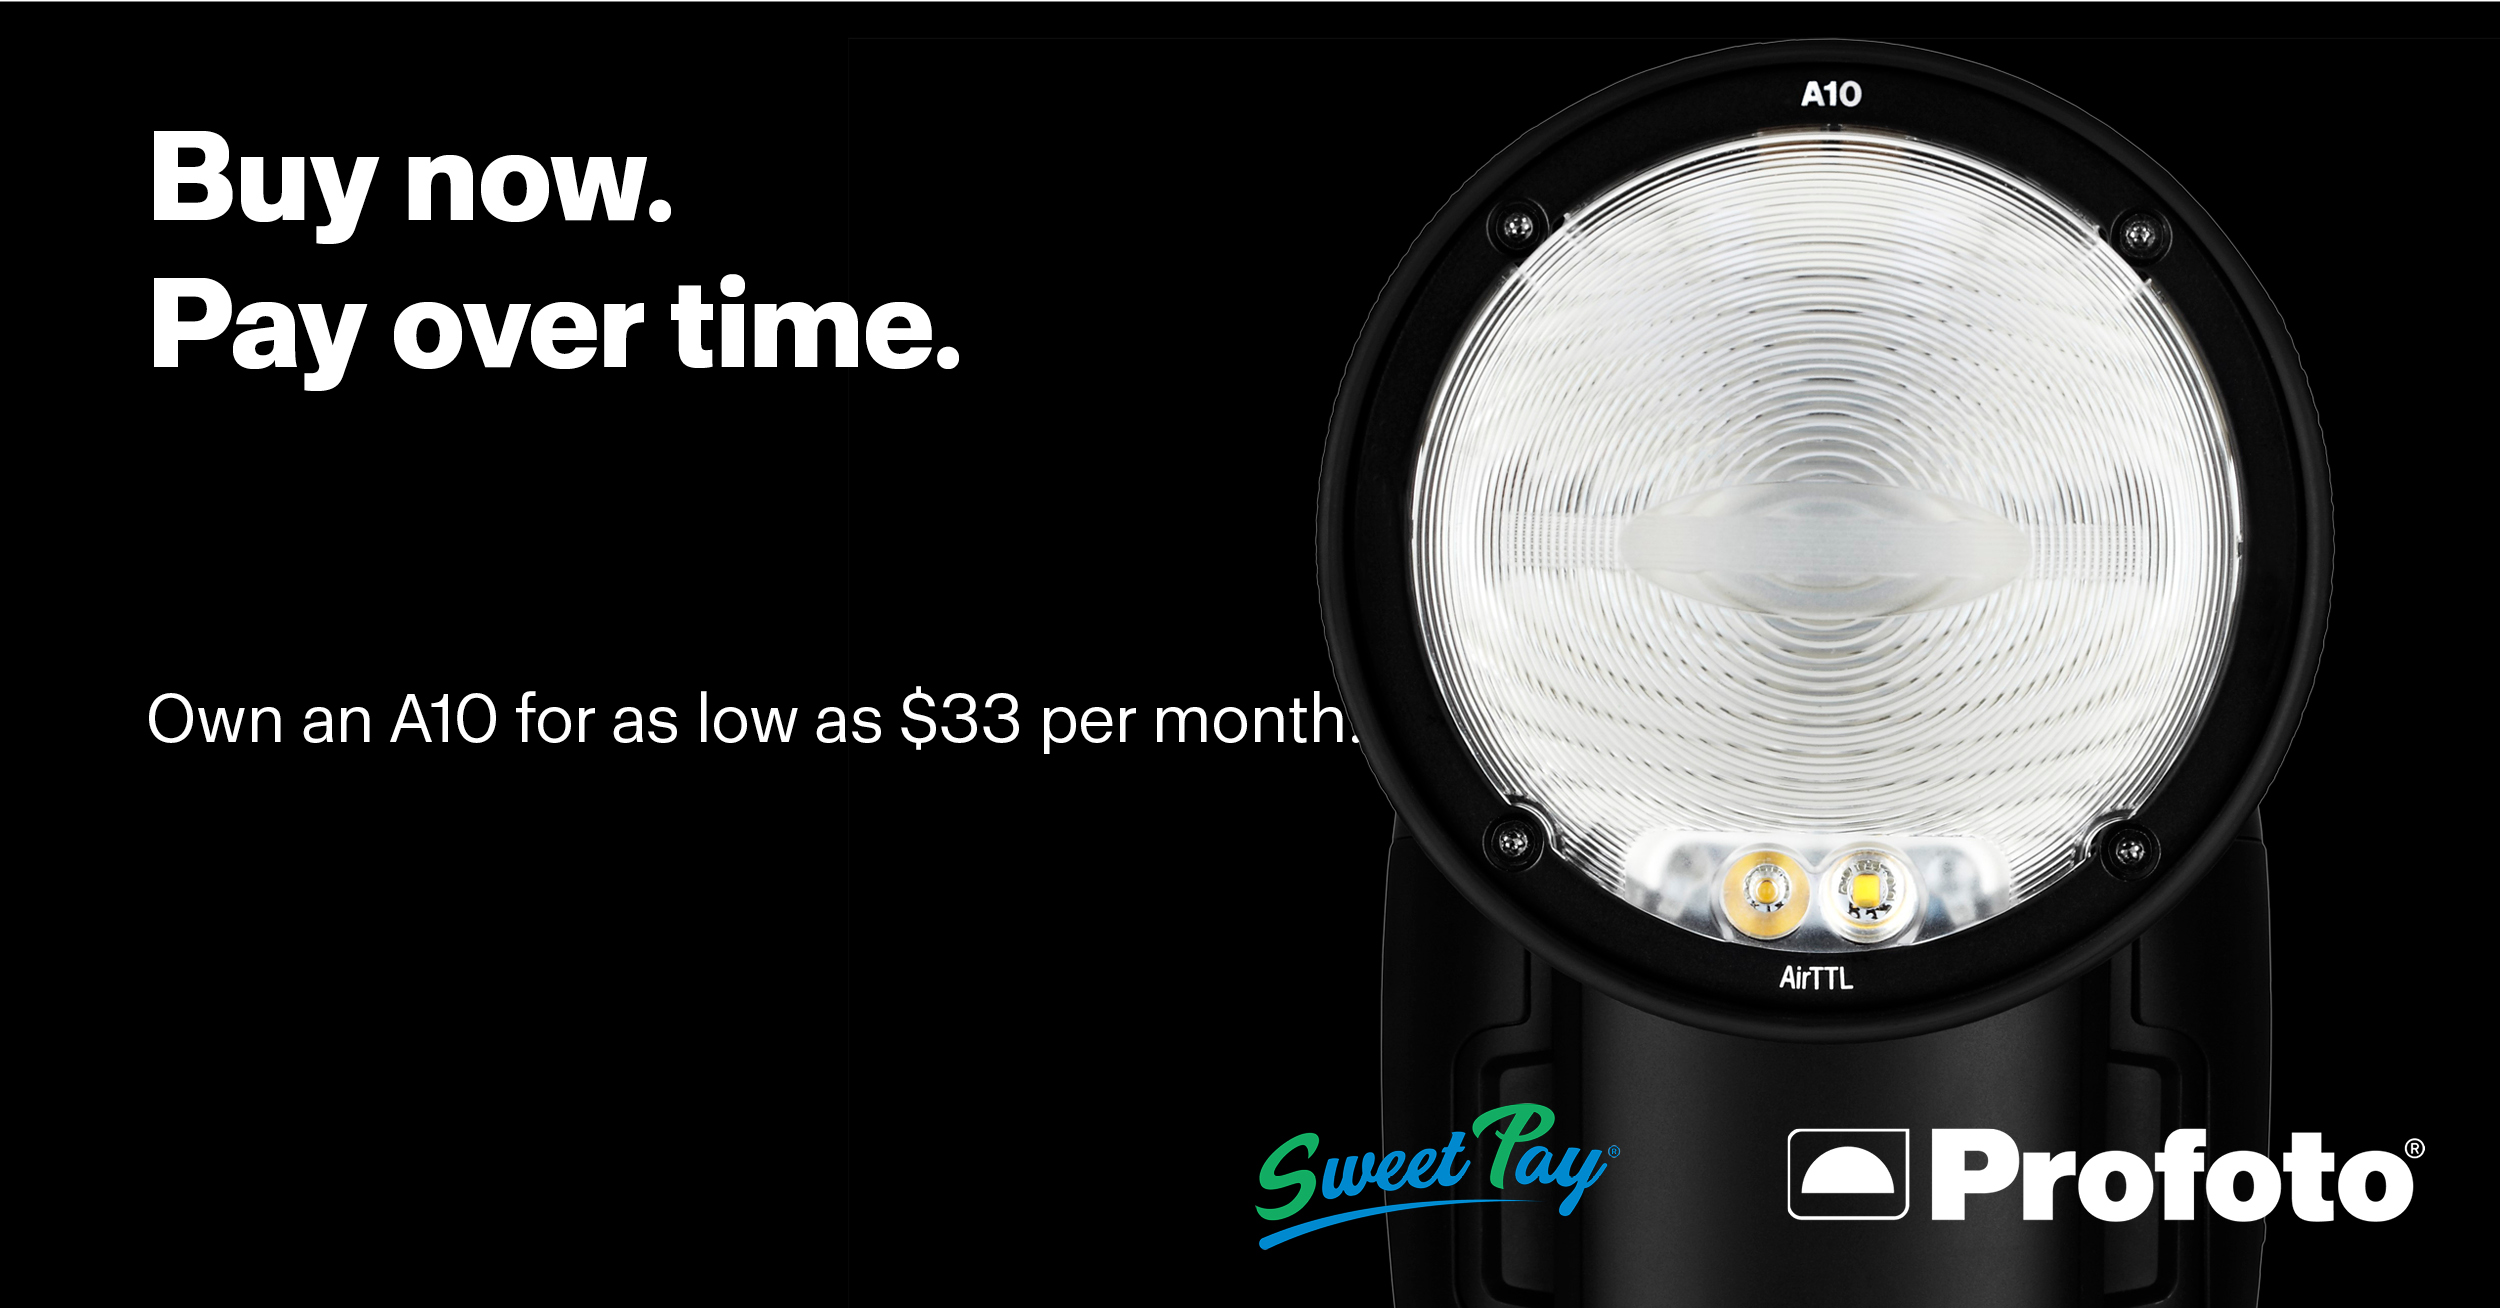 Buy Now Pay Later with Sweet Pay